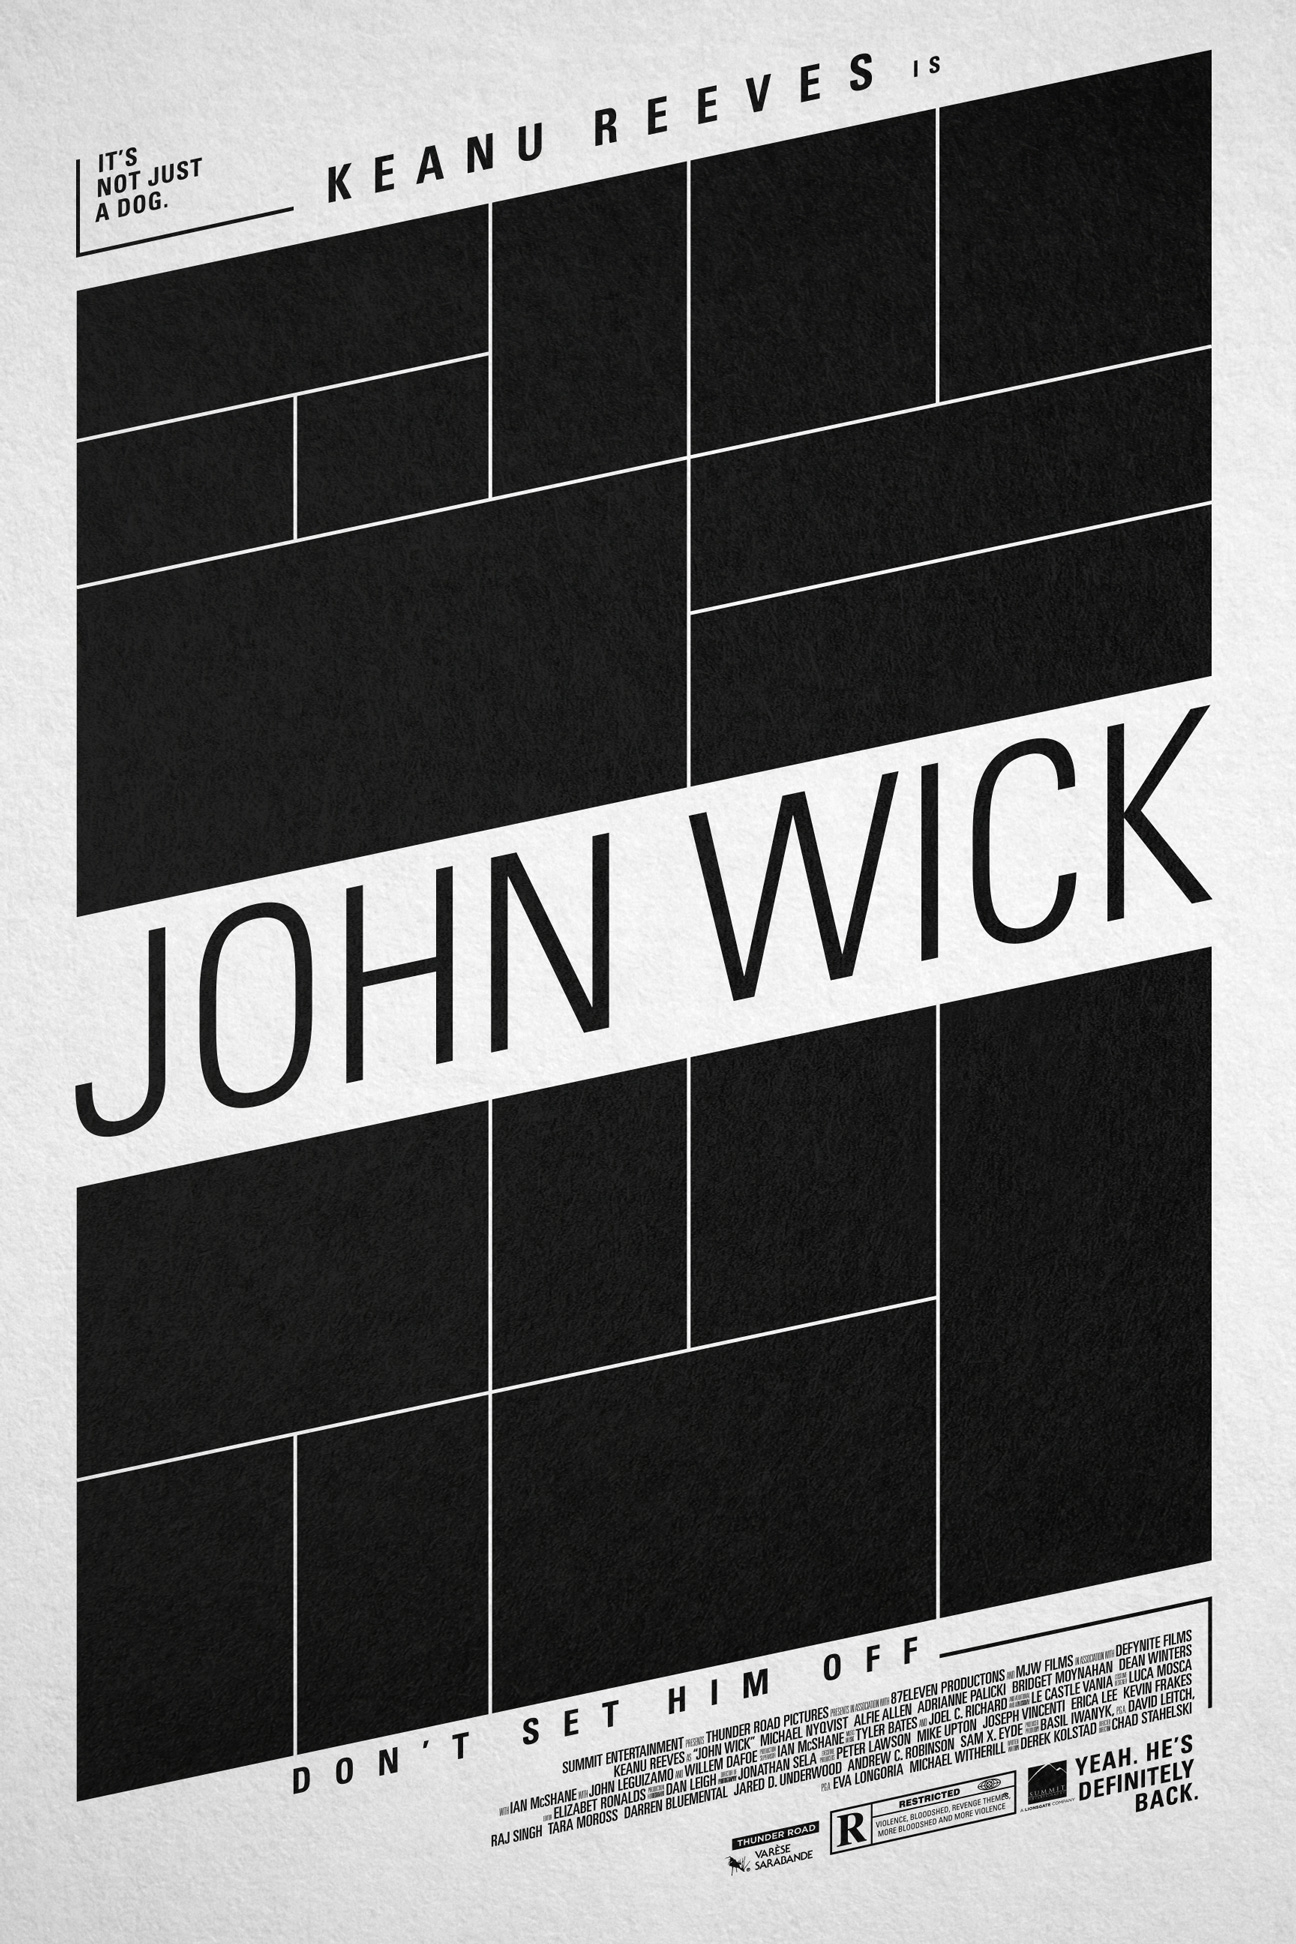 John wick poster changethethought studio